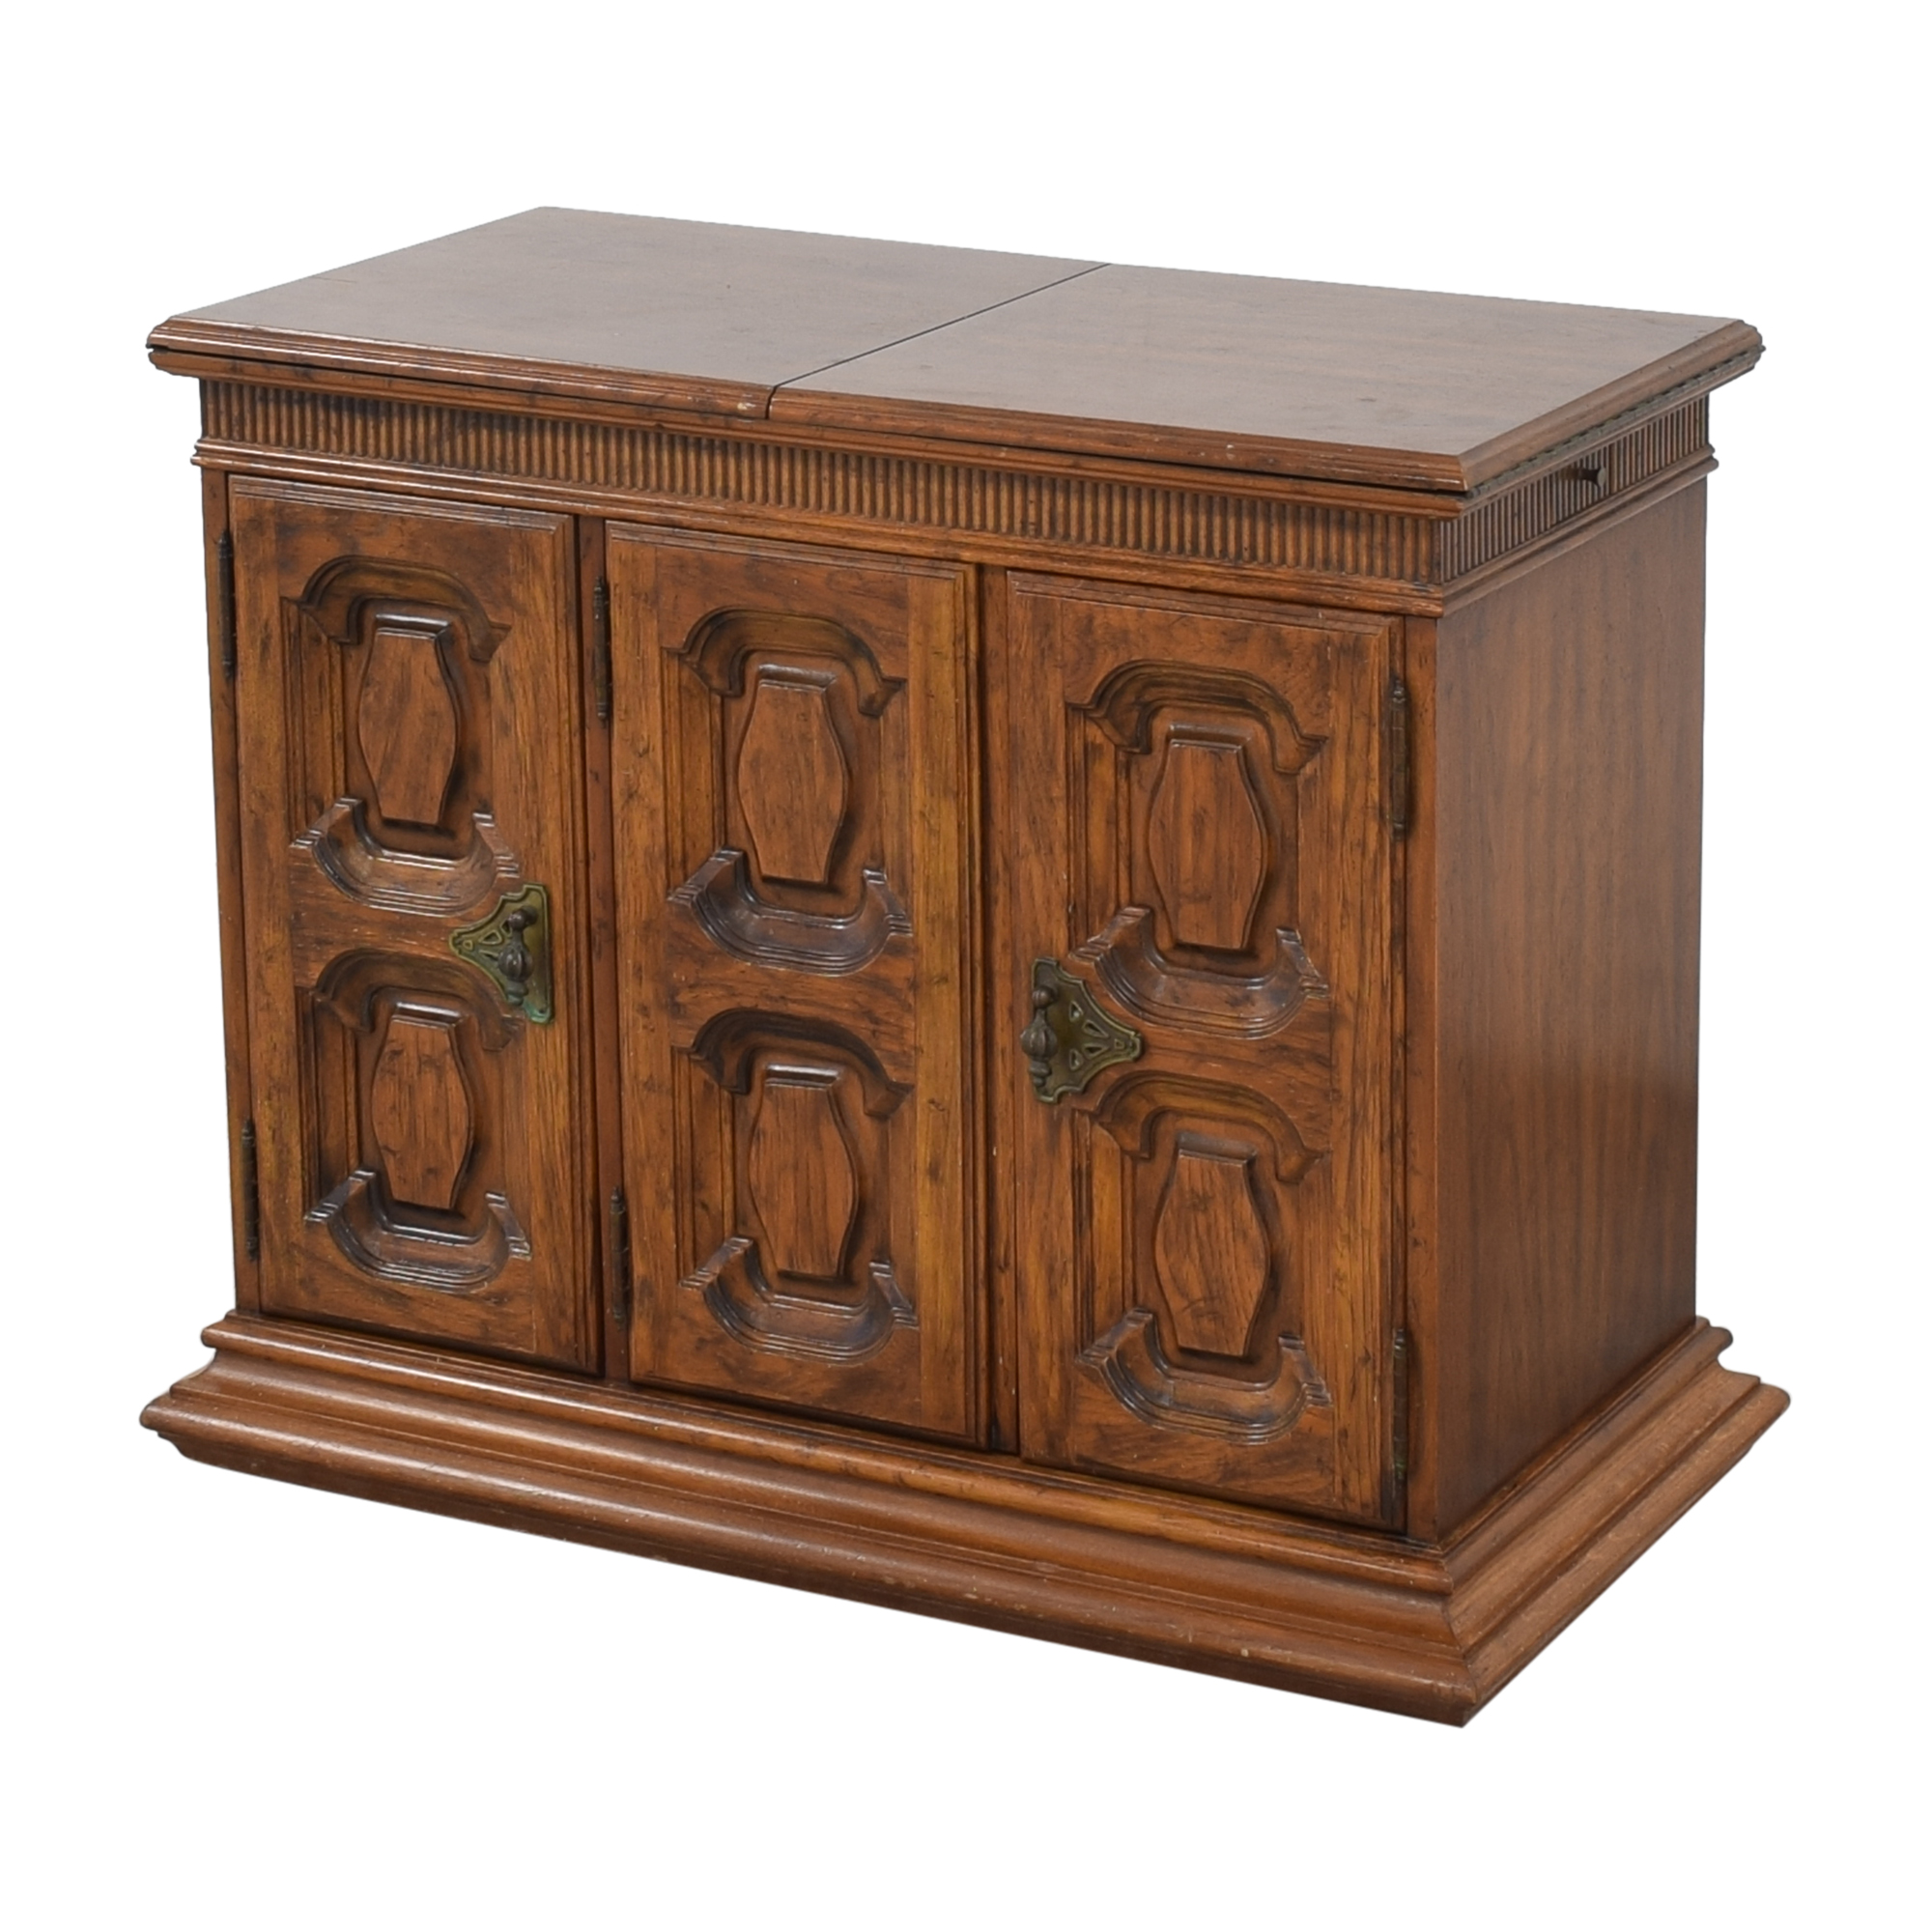 Heritage Heritage Extending Bar Cabinet used